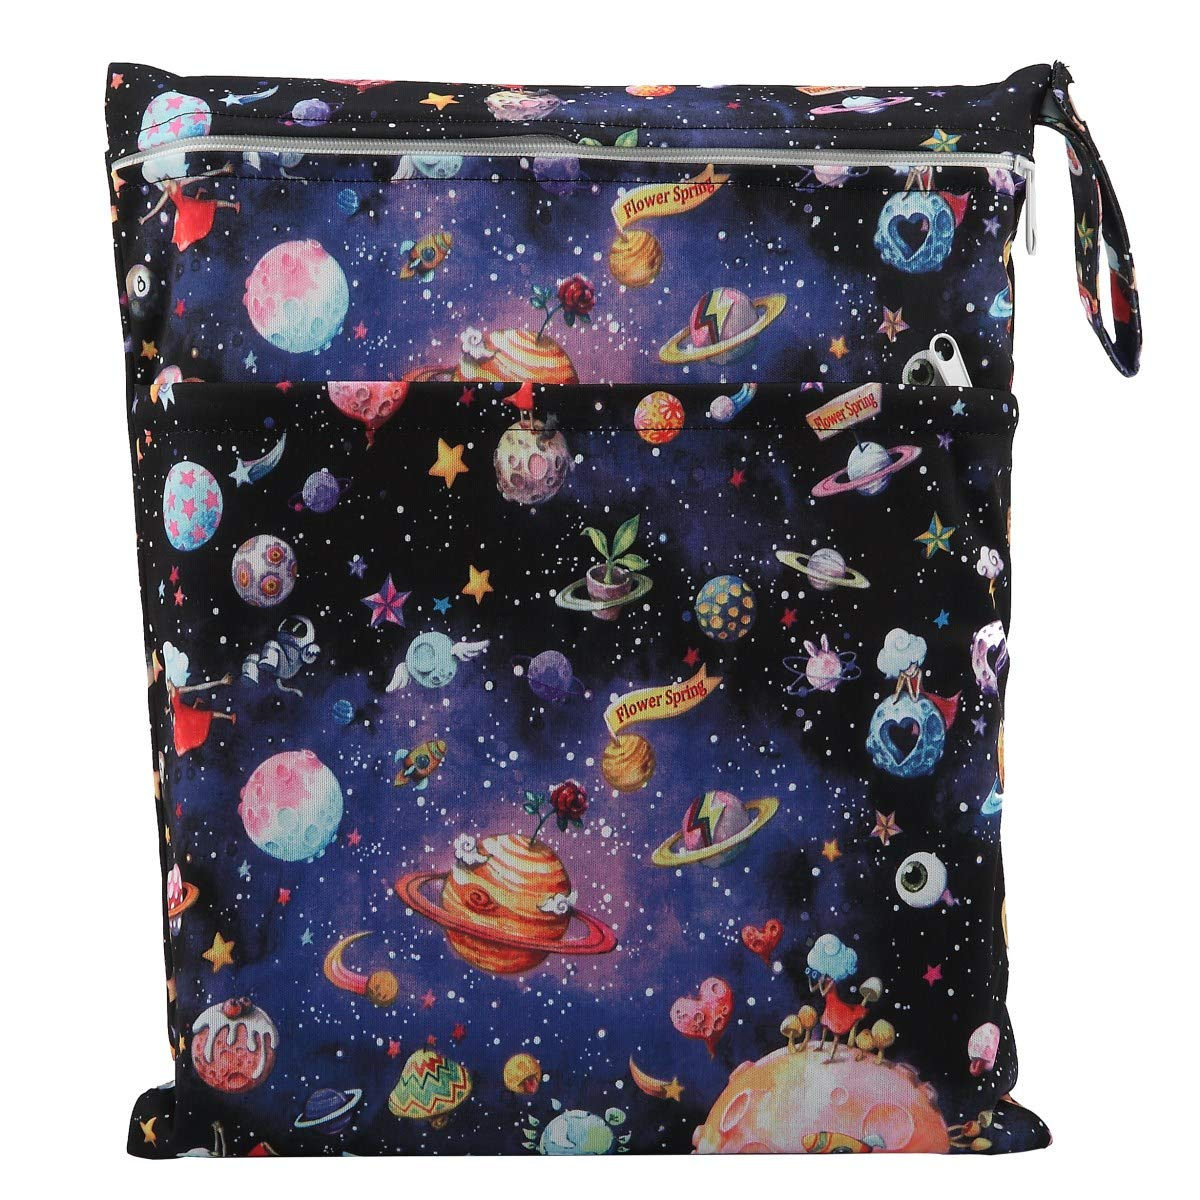 Rainbow Sigzagor Medium Wet Dry Bag Baby Cloth Diaper Nappy Insert Bag Reusable Washable with Two Zippered Pockets